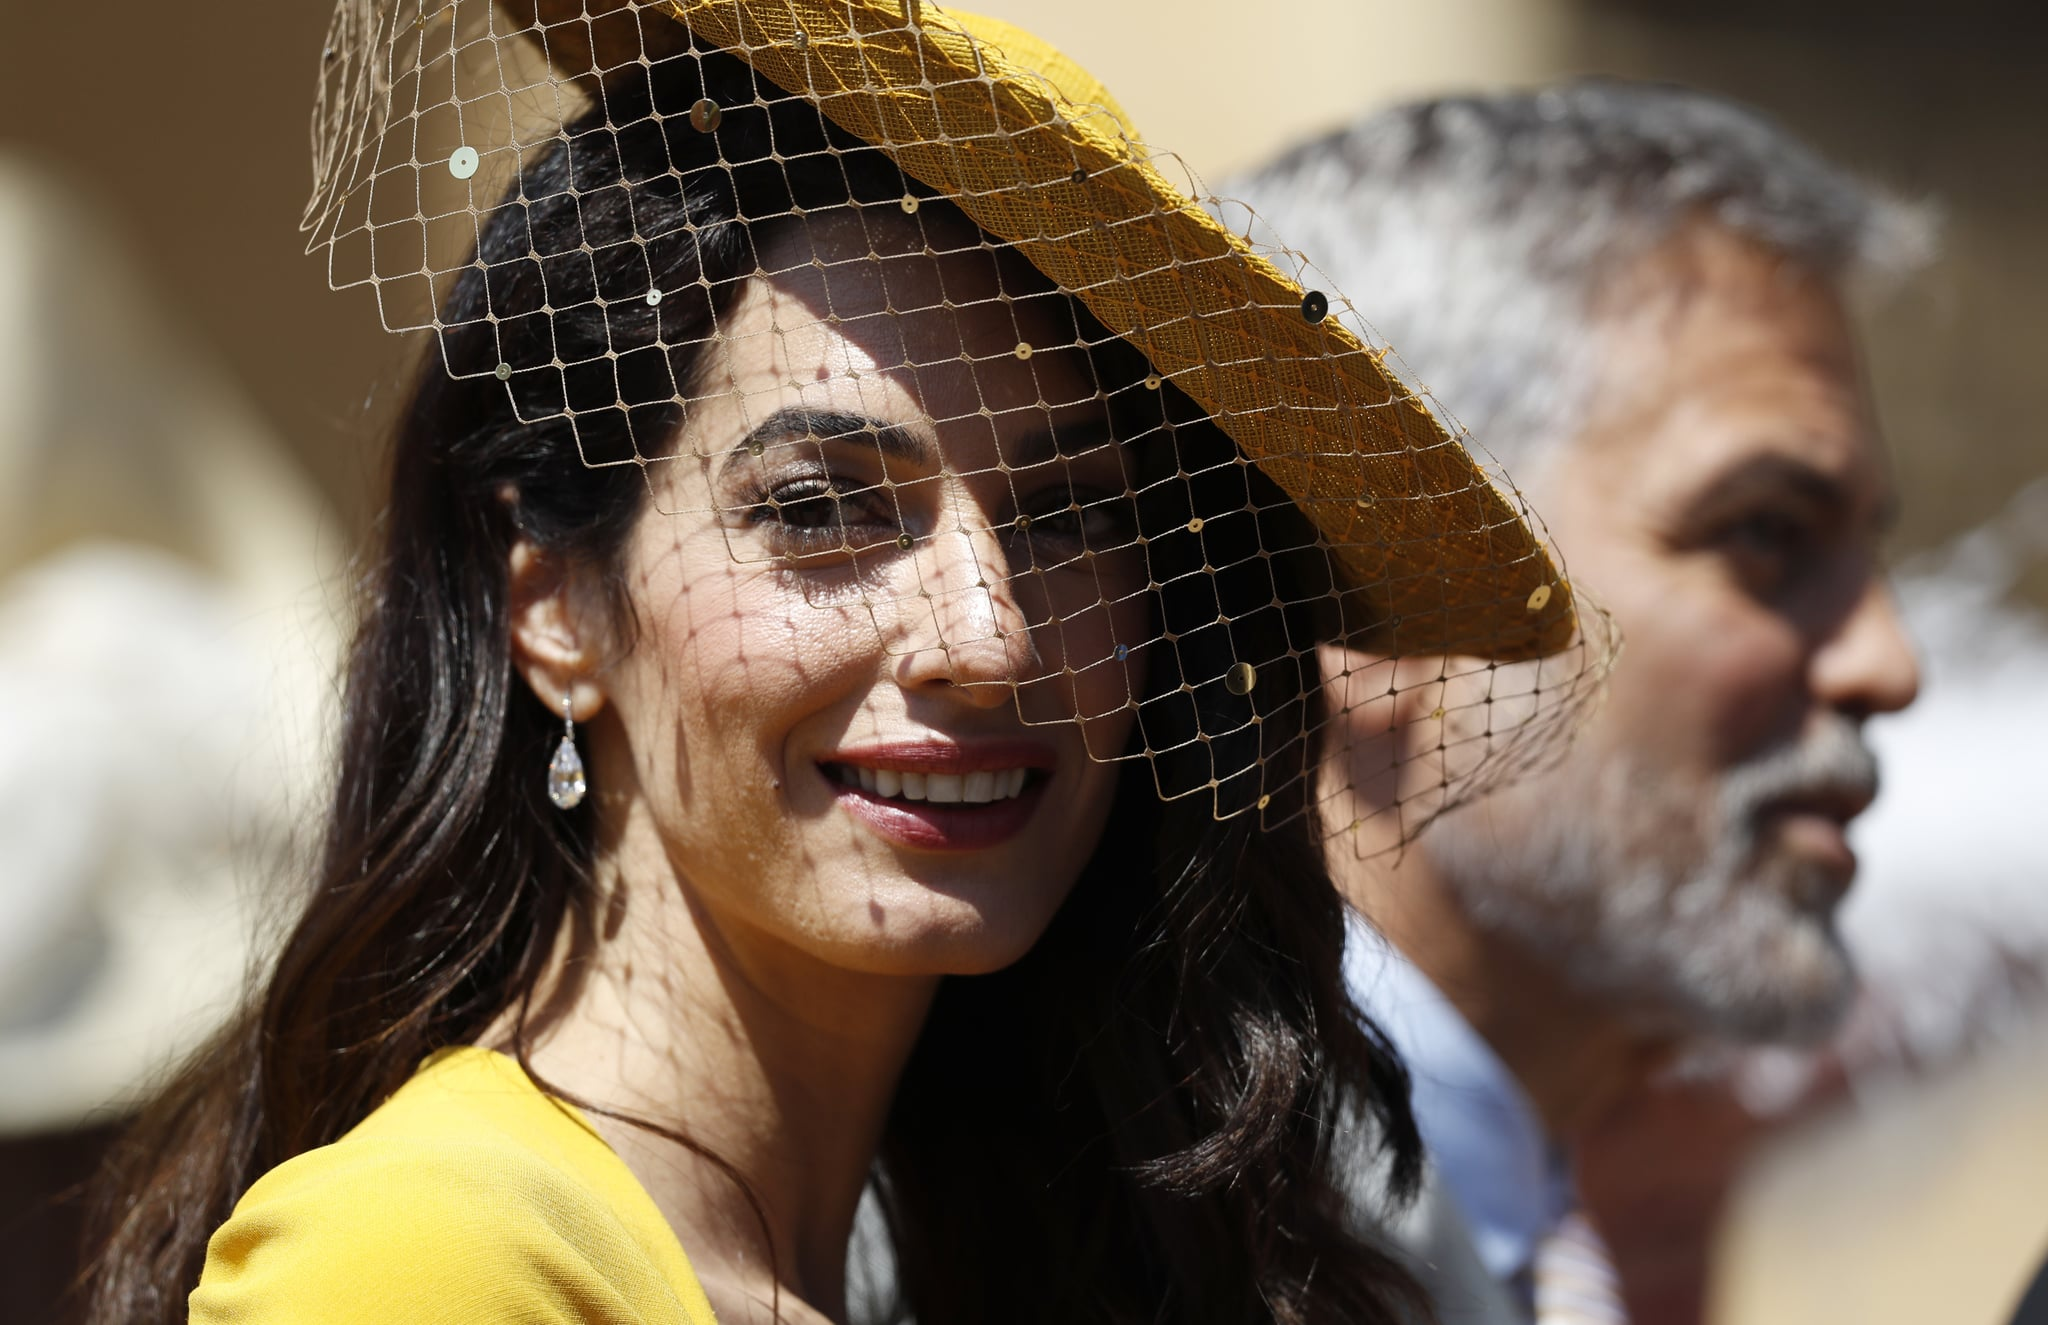 WINDSOR, UNITED KINGDOM - MAY 19:  Amal Clooney and George Clooney arrive at St George's Chapel at Windsor Castle for the wedding of Prince Harry and Meghan Markle on May 19, 2018 in Windsor, England. (Photo by Alastair Grant - WPA Pool/Getty Images)